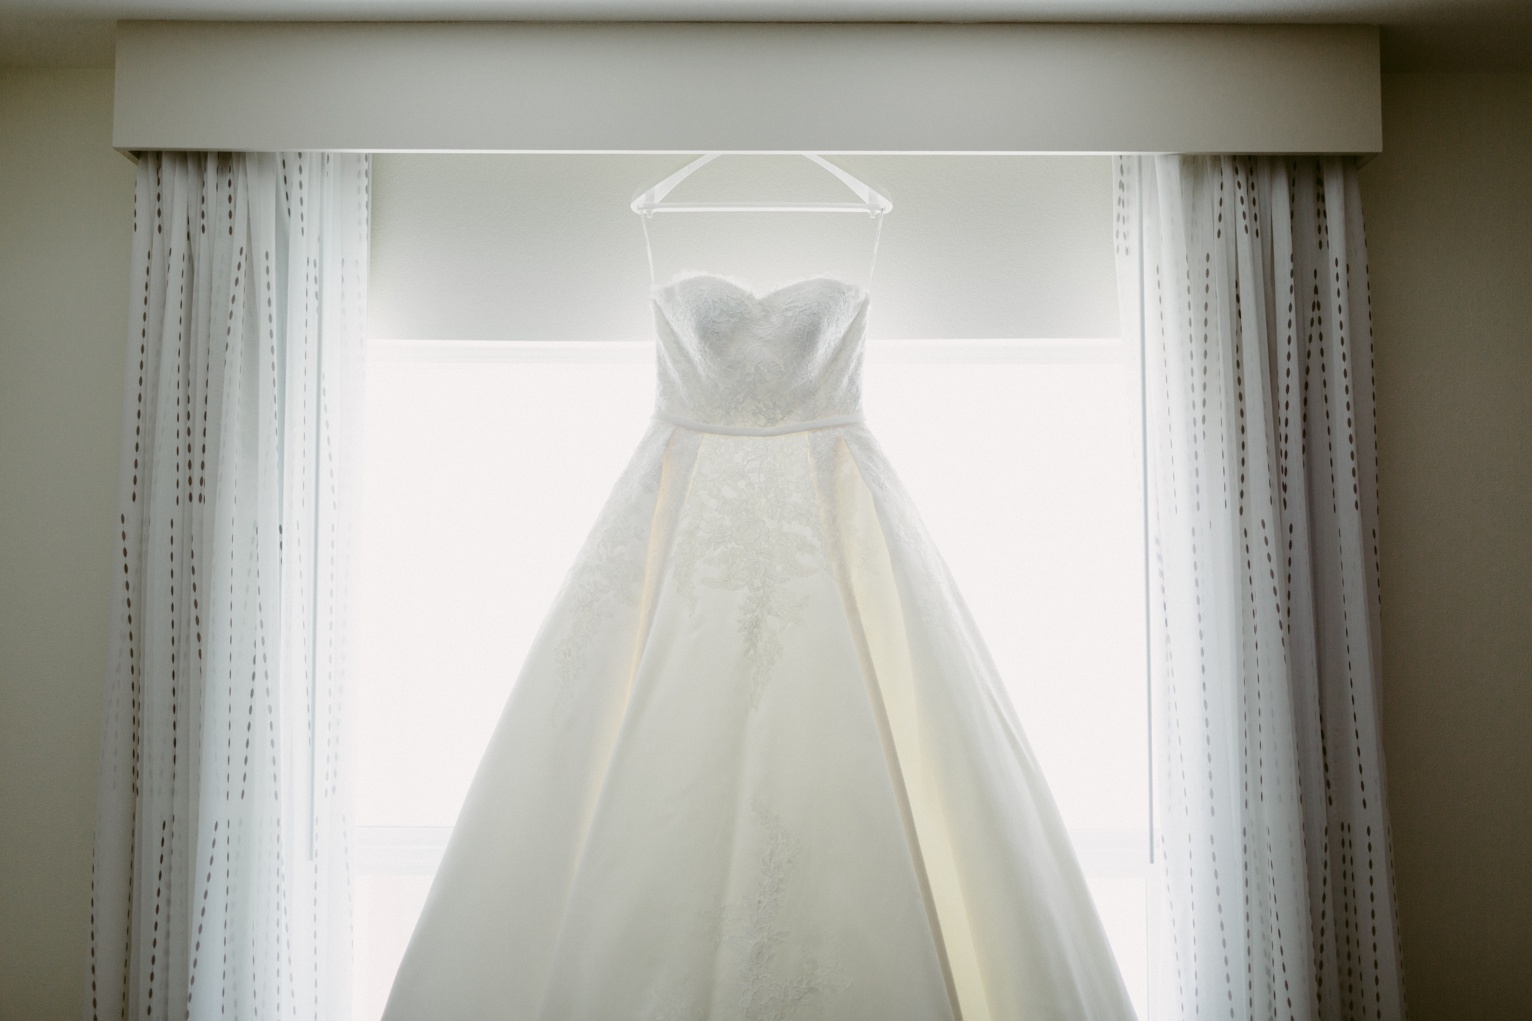 Dreamtownco.com_blog_David&Kiana_Wedding_0002.jpg